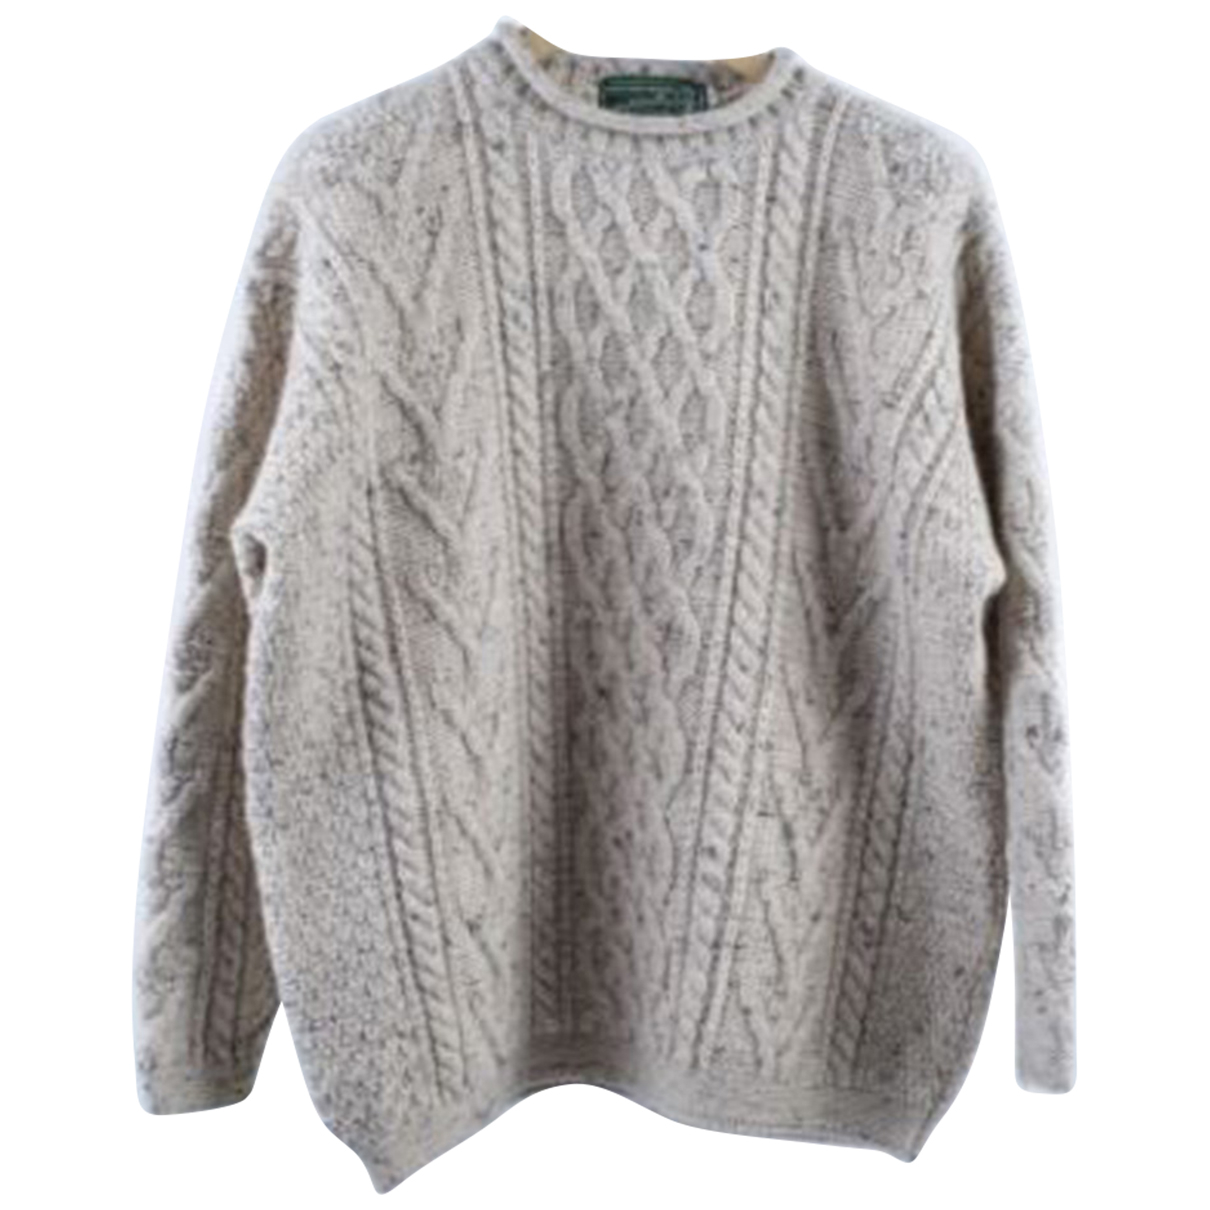 Autre Marque N White Wool Knitwear for Women XL International